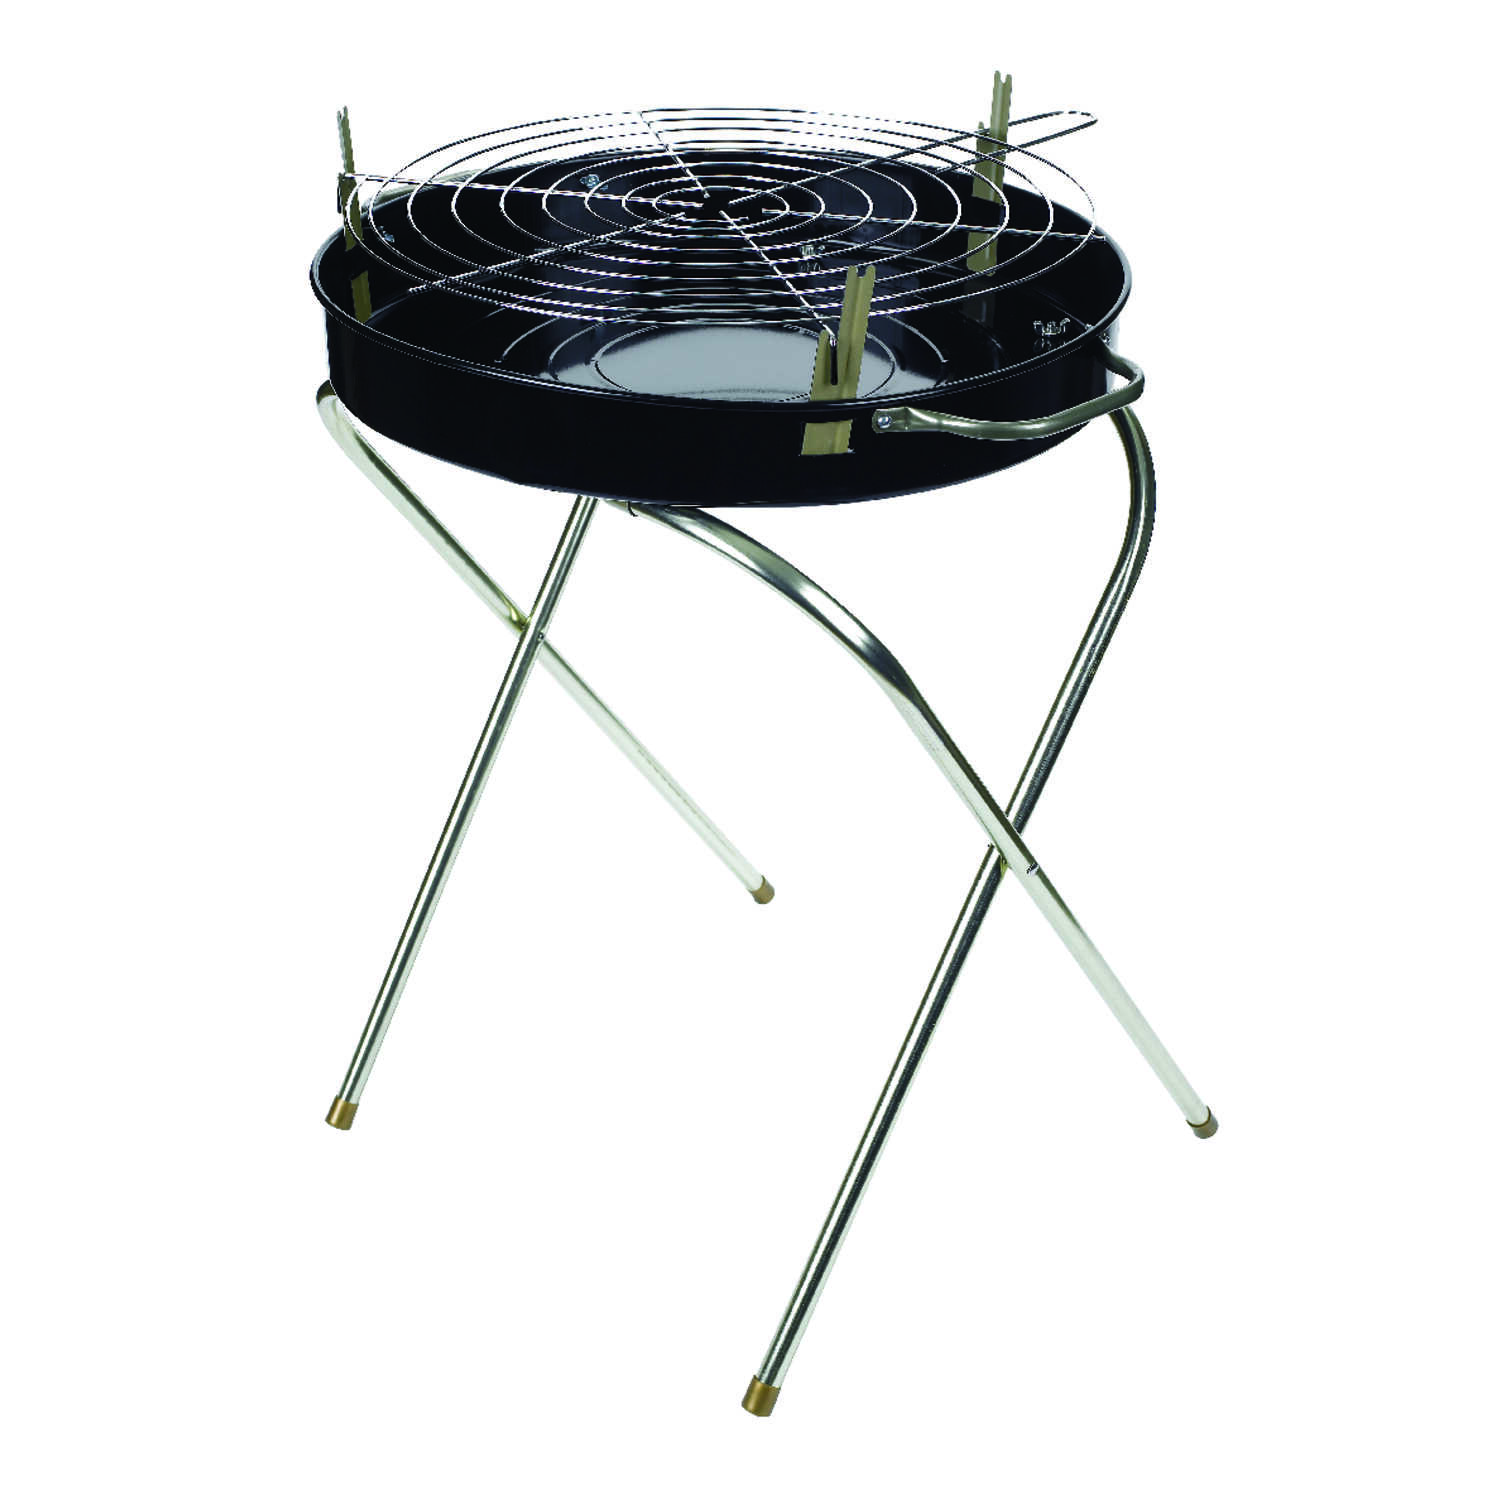 Marsh Allen  Fold-A-Matic  Charcoal  Portable  Grill  Black  18 in.